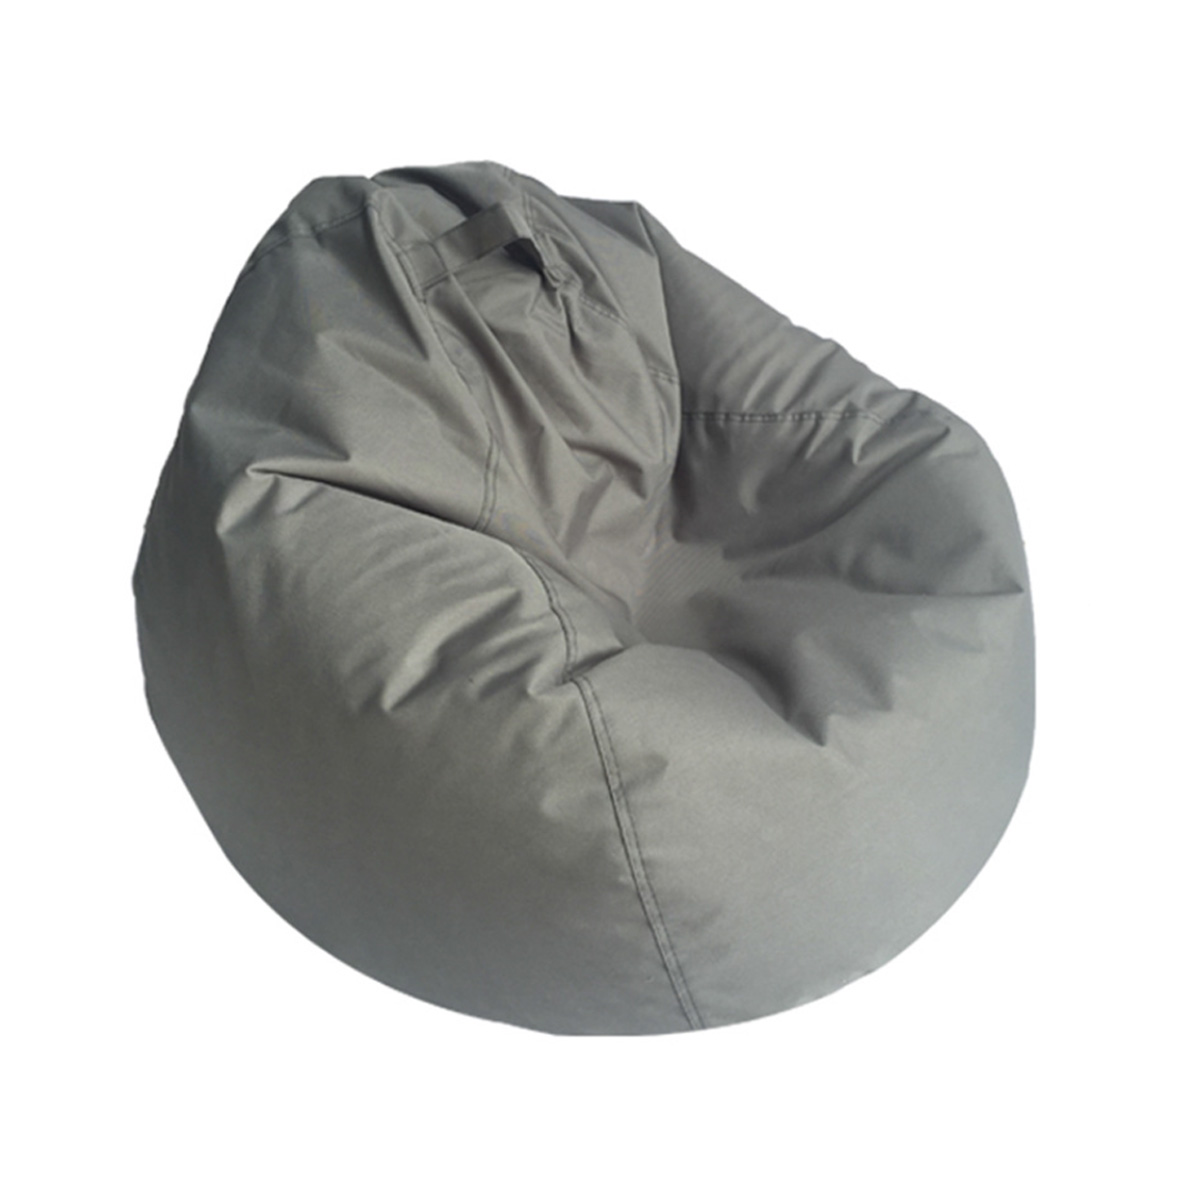 Beanbag Sofa Chair Cover Lounger Sofa Ottoman Seat Living Room Furniture Without Filler Bean Bag Bed Pouf Puff Couch Lazy Tatami